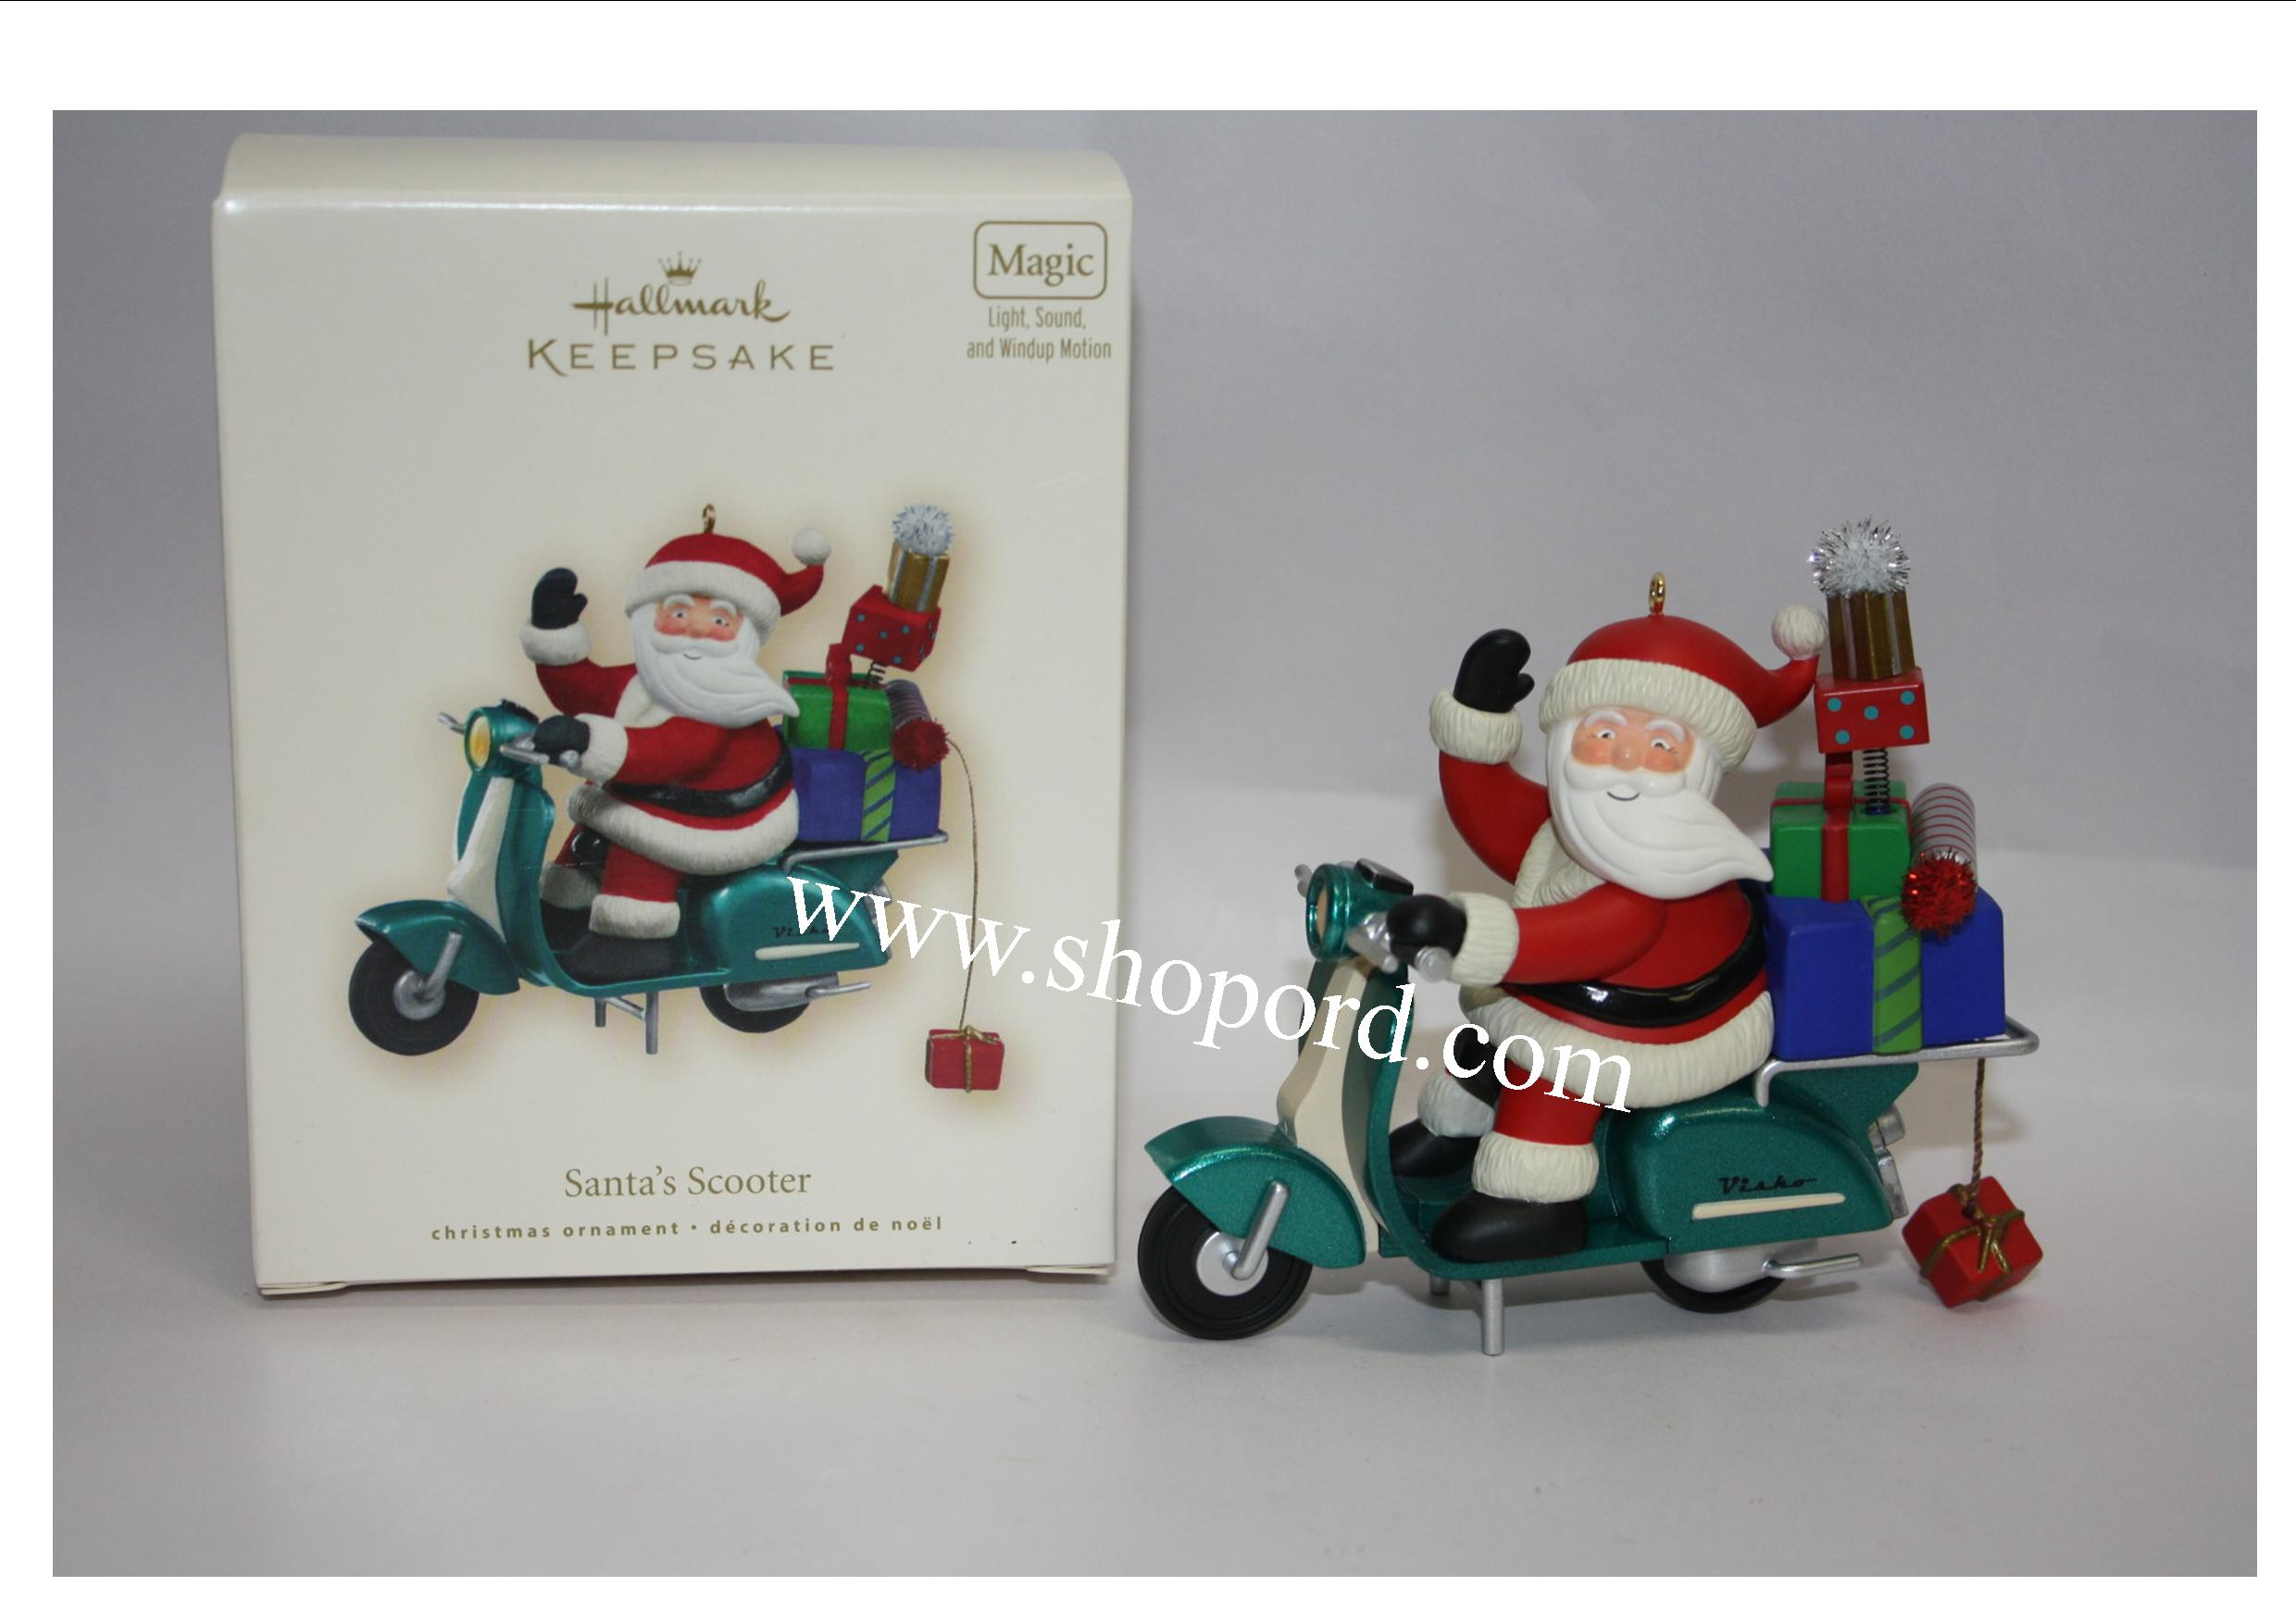 Hallmark 2007 Santas Scooter Magic Ornament QXG7569